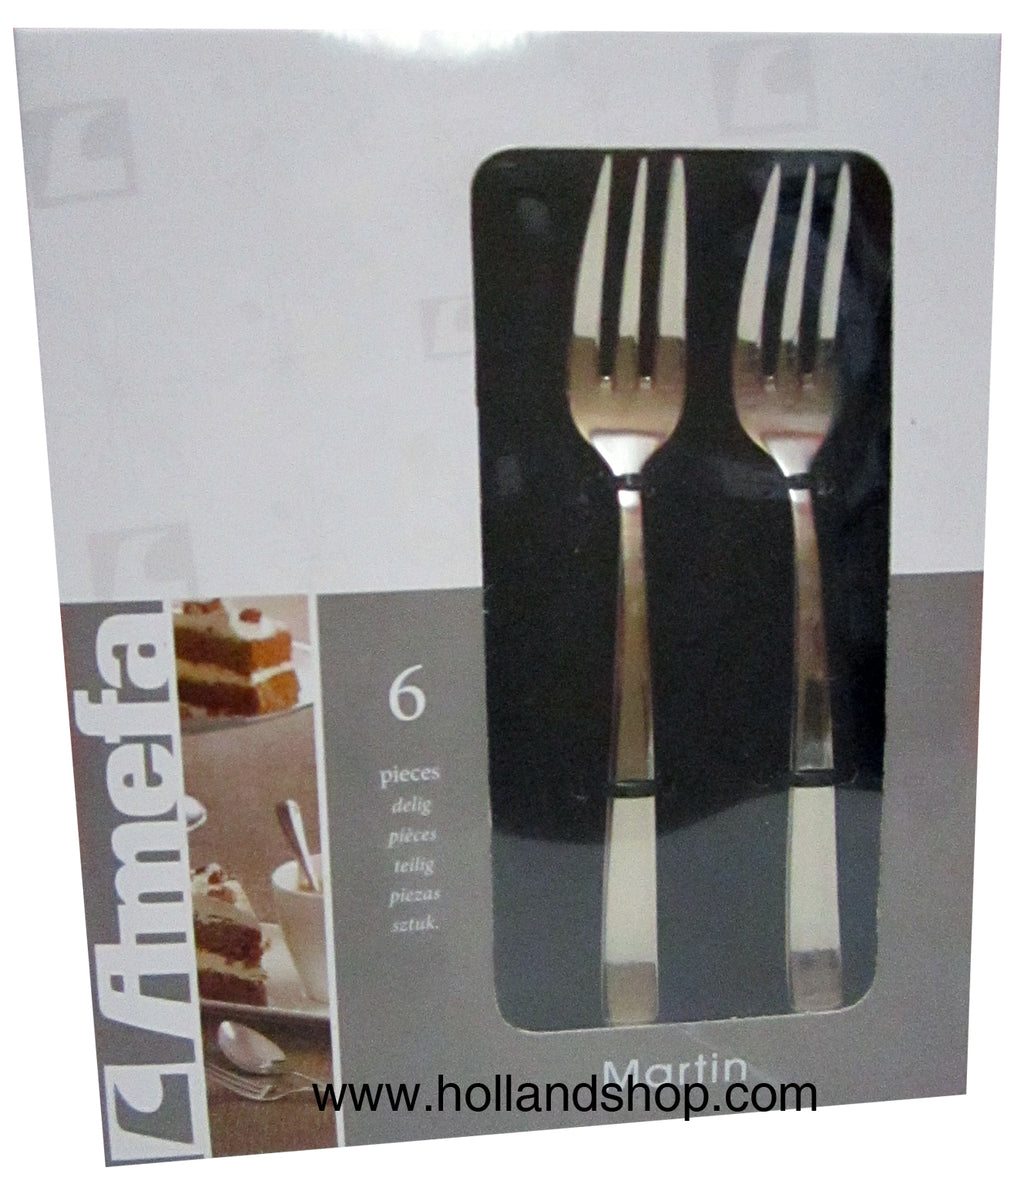 Cake Forks - Amefa Martin #1316 (Set of 6)